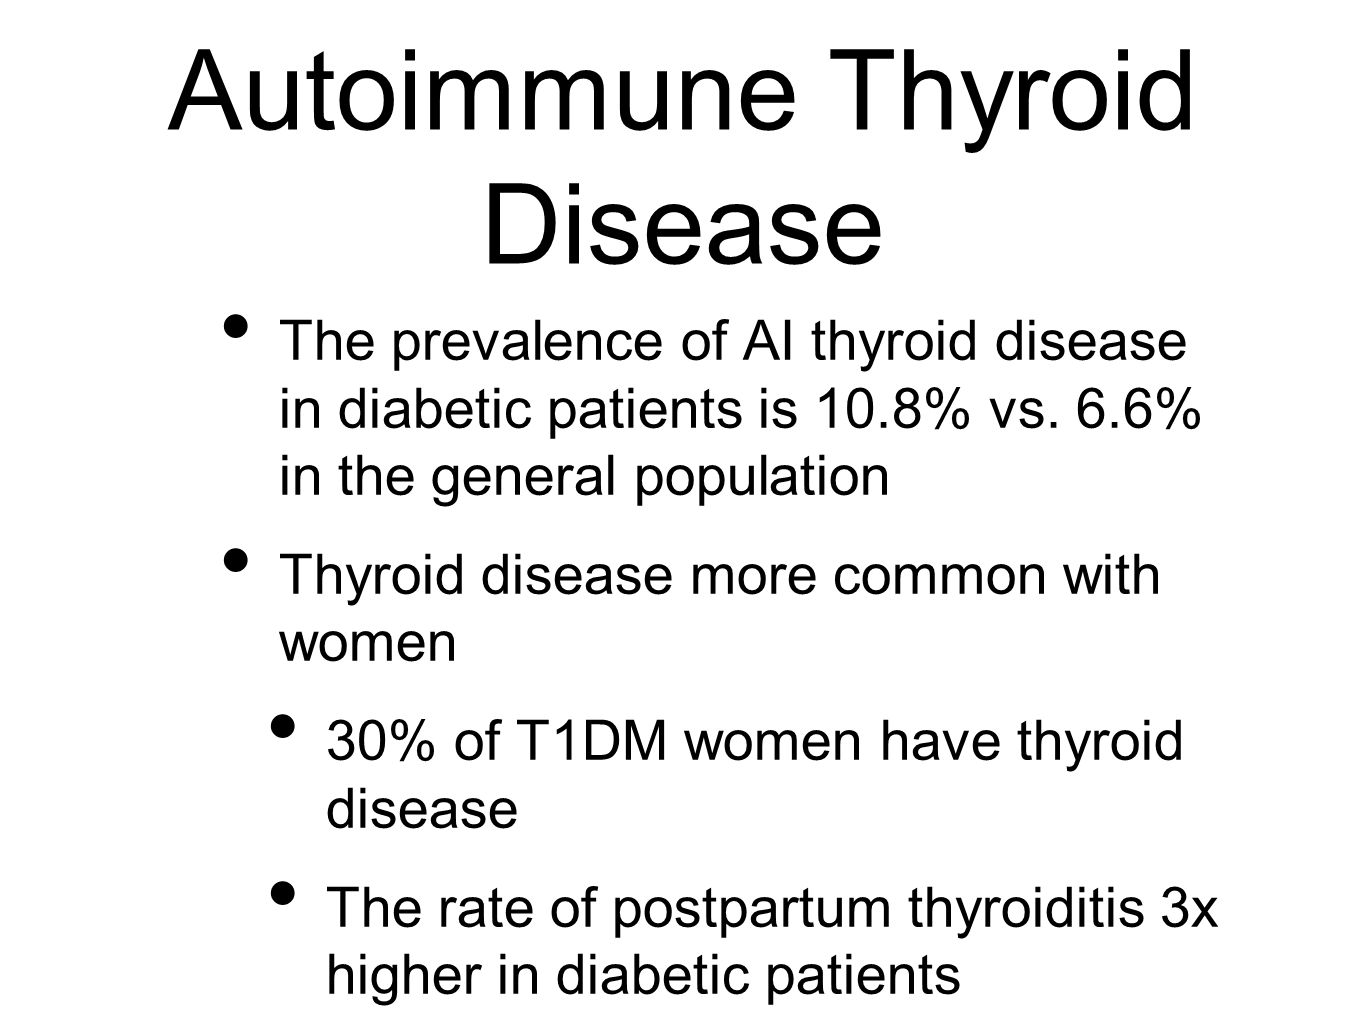 Causes of Hypothyroidism Iodine deficiency or excess Radiation Surgery Medications: Lithium, amiodarone Hypothalamic-Pituitary dysfunction